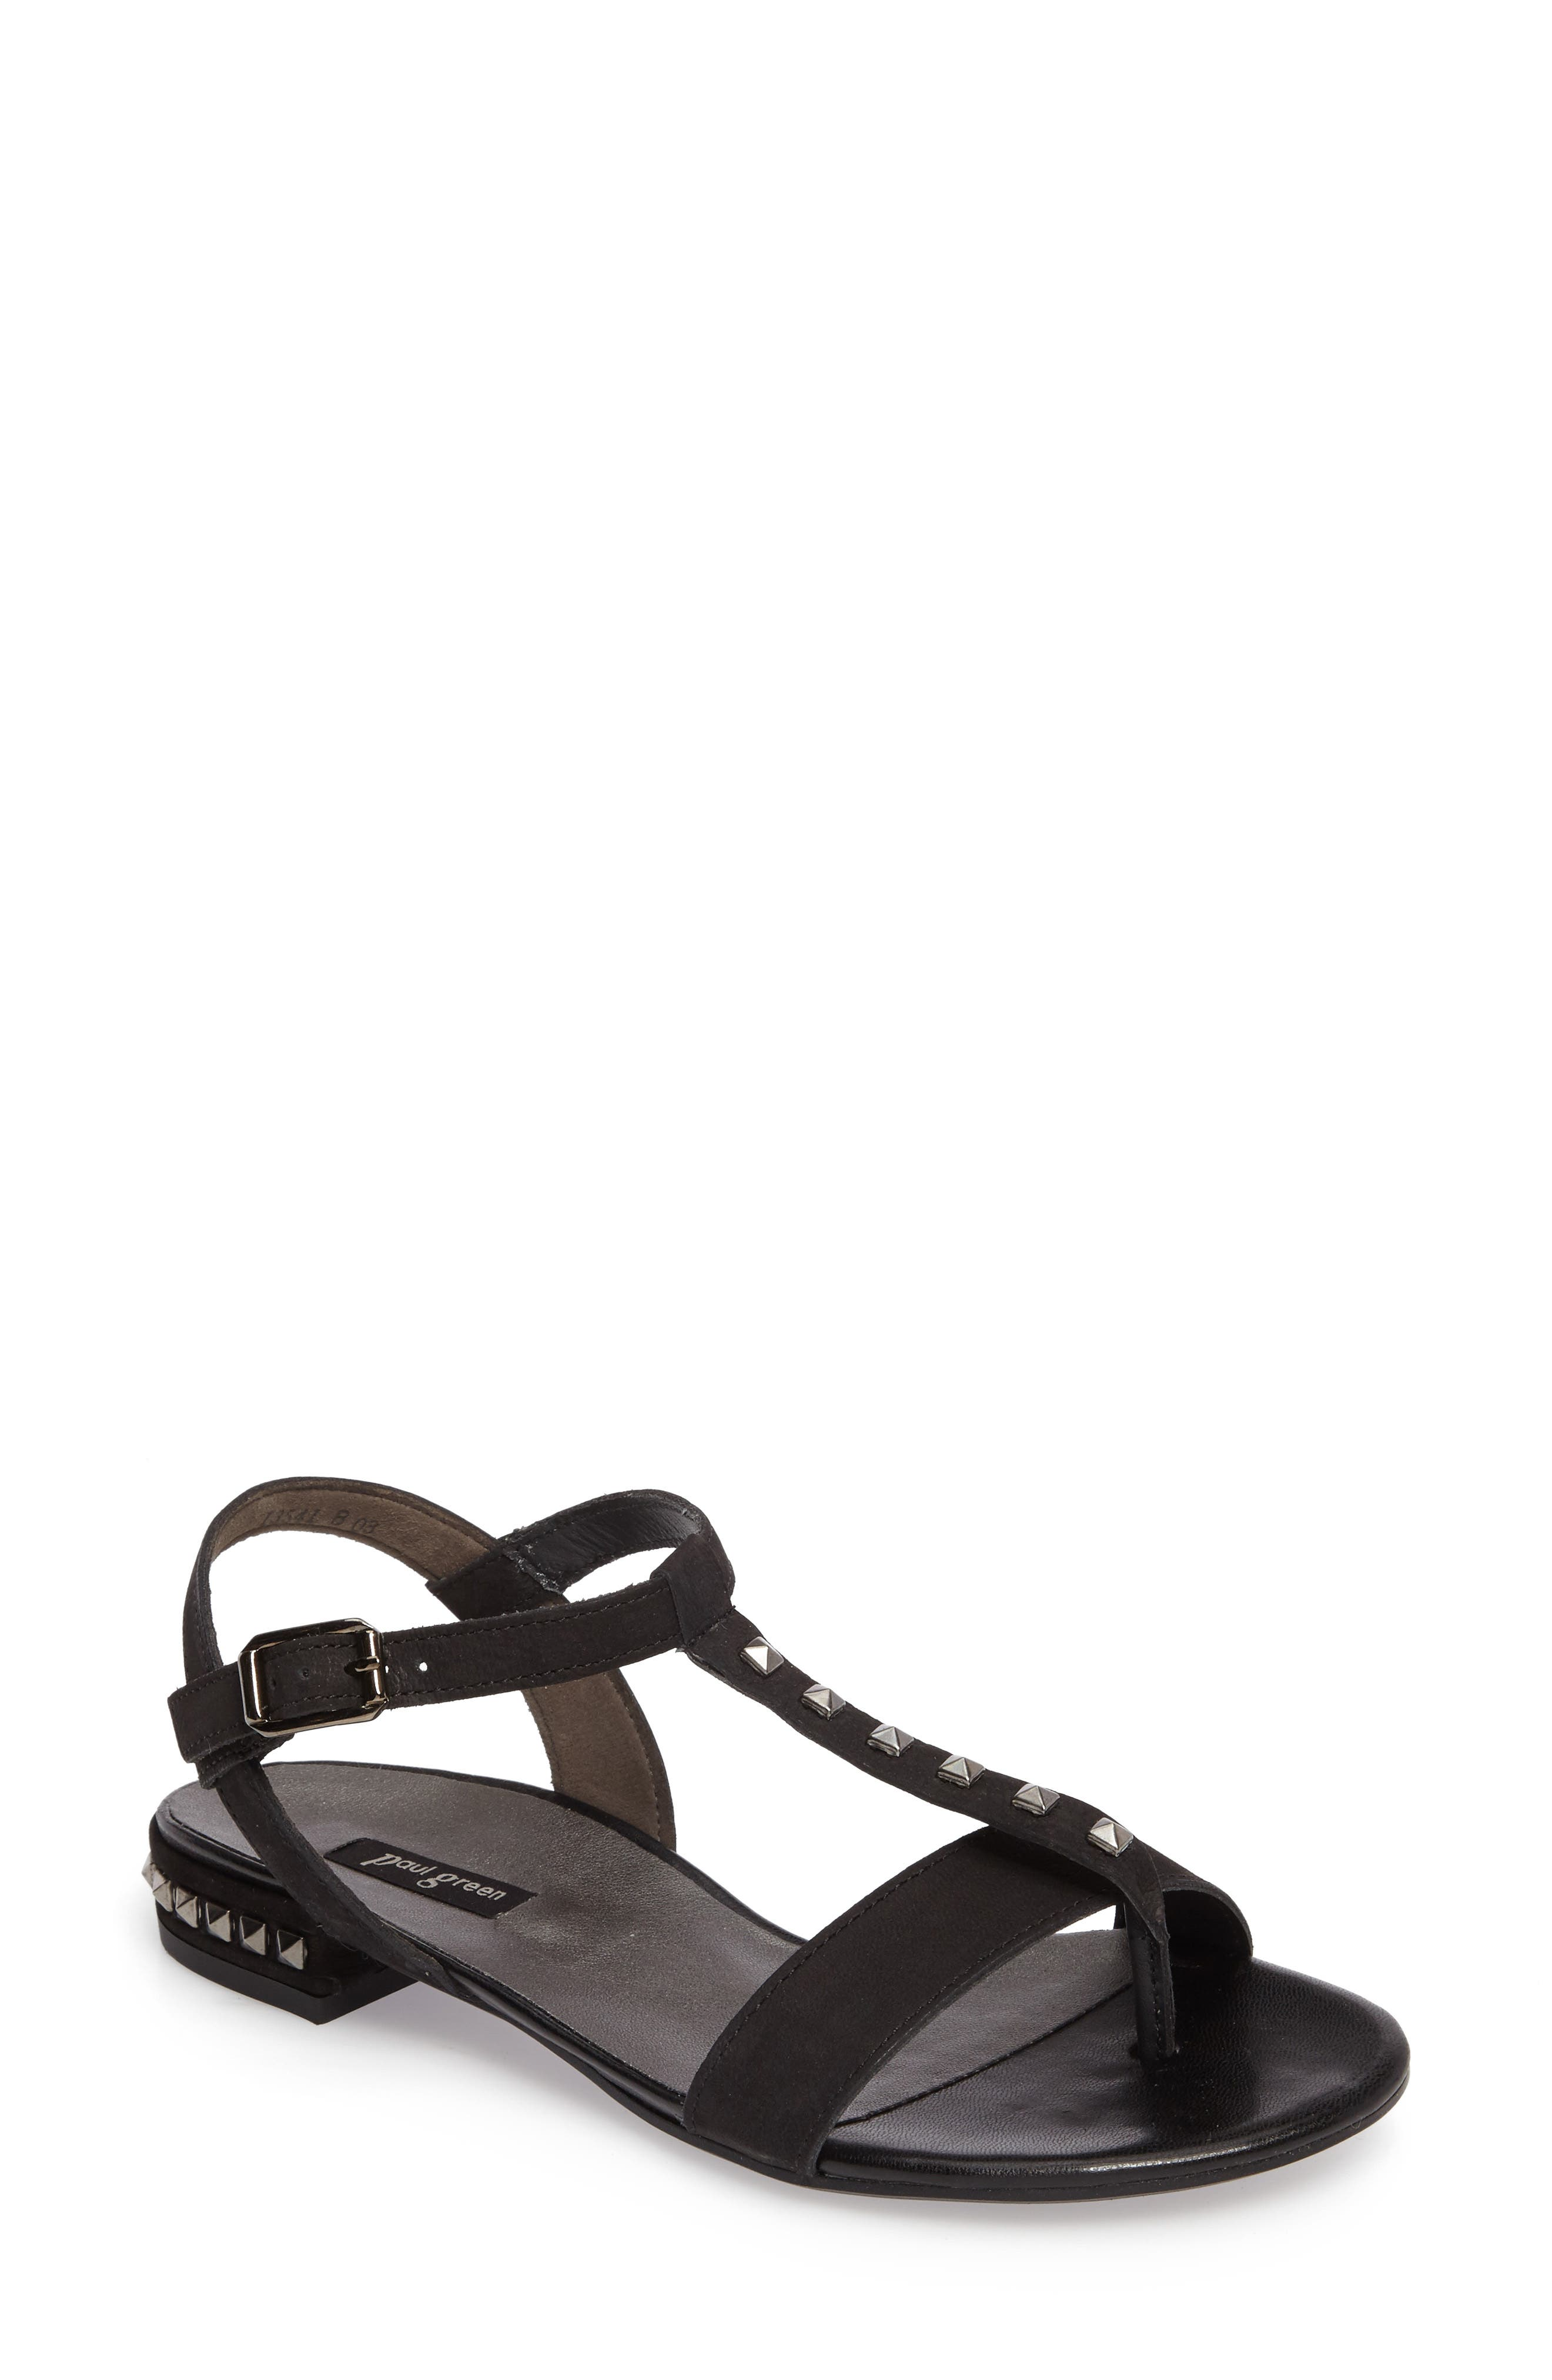 Nepal T-Strap Sandal,                         Main,                         color,